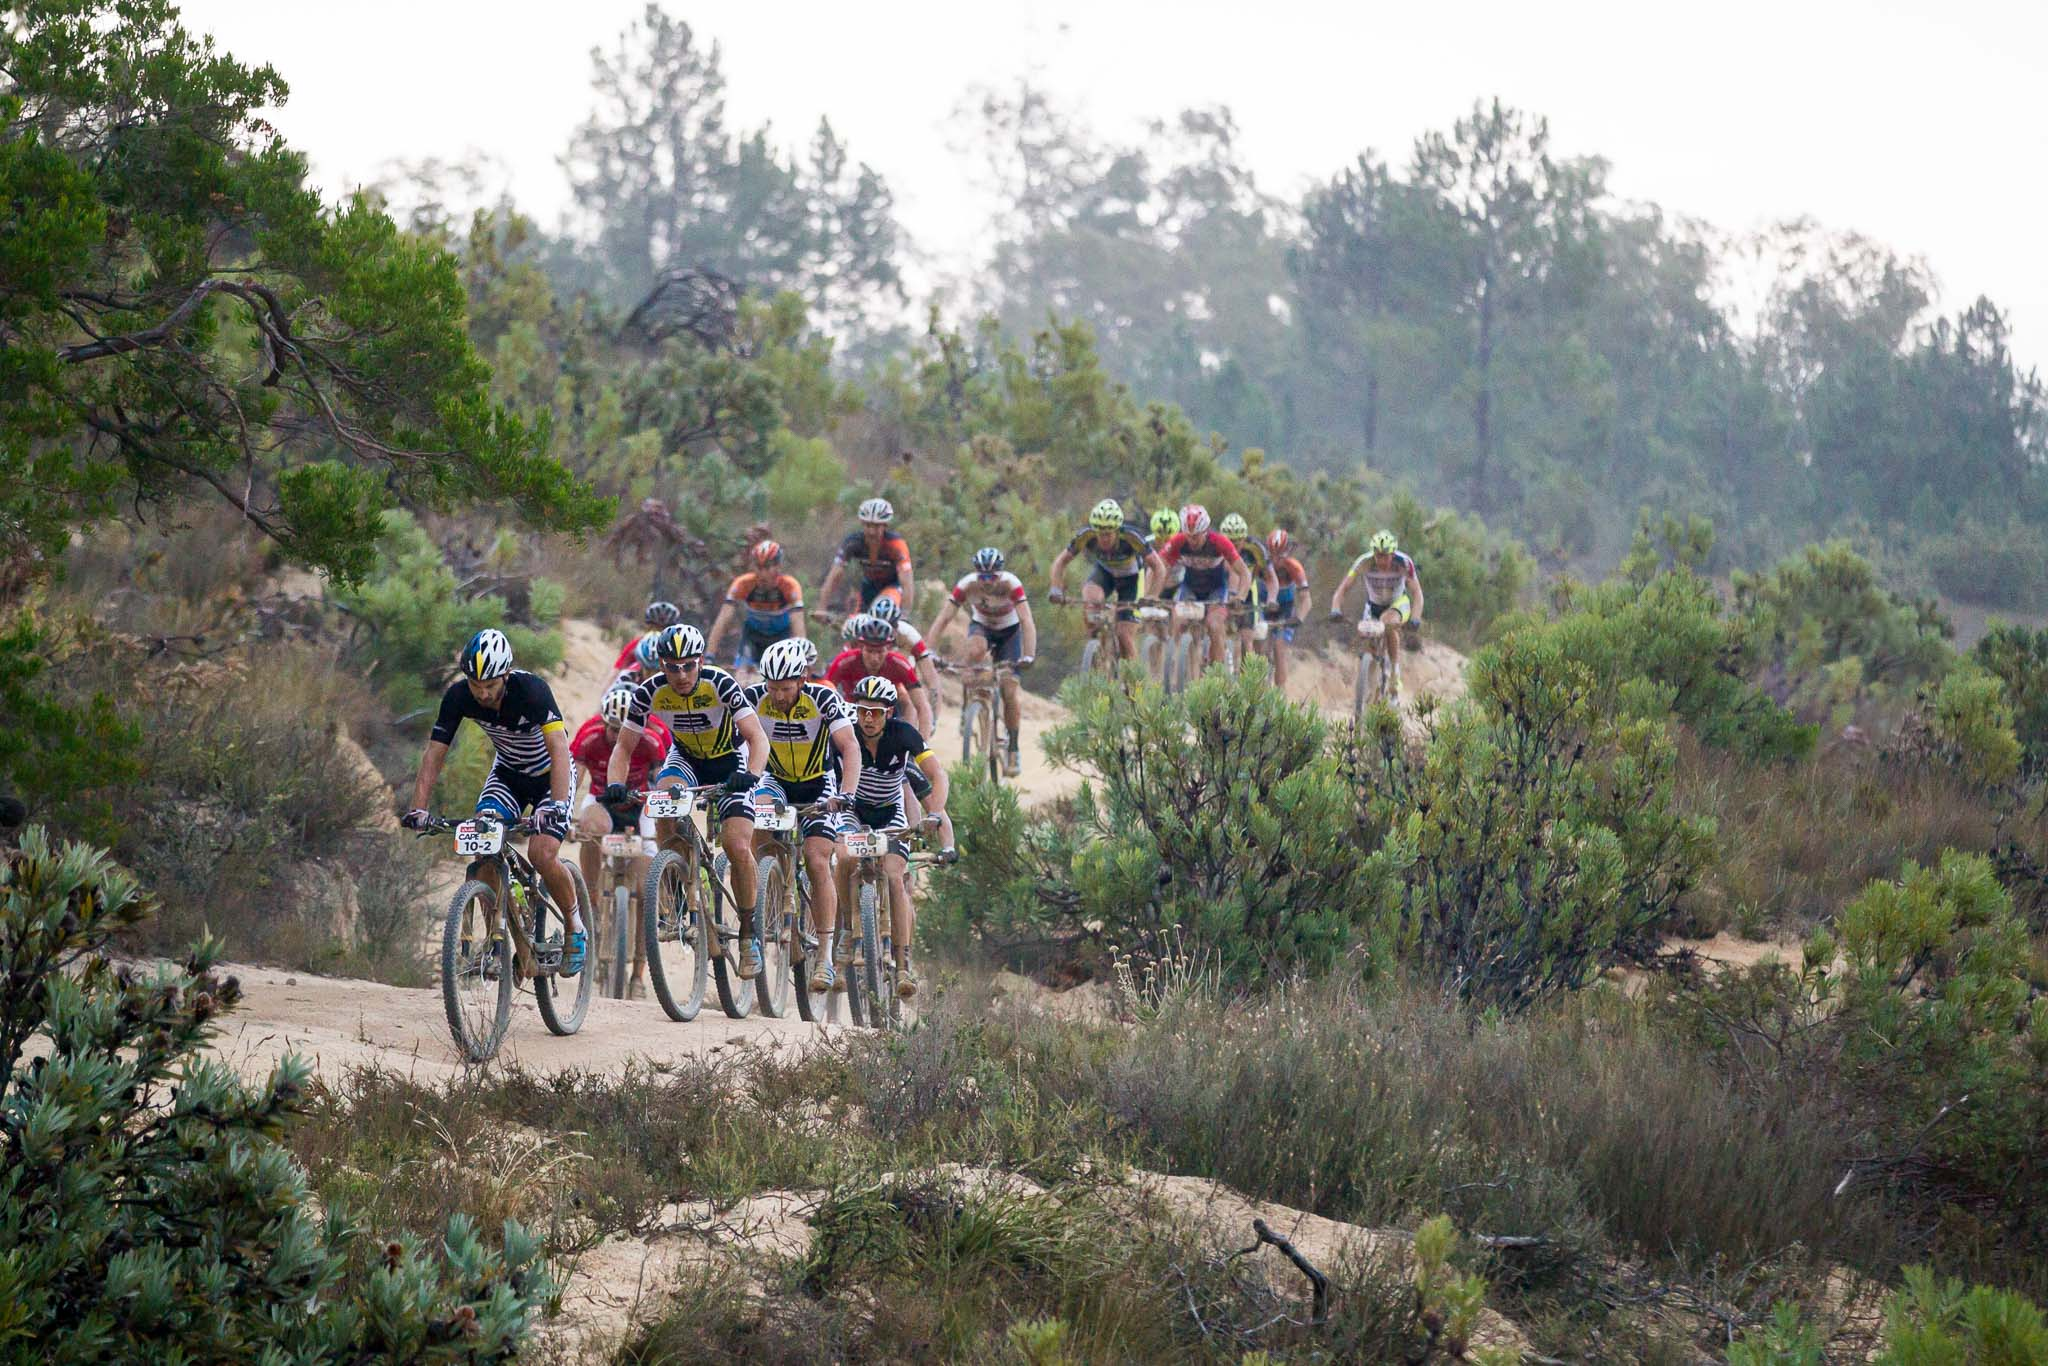 The lead bunch during stage 5 of the 2016 Absa Cape Epic Mountain Bike stage race held from the Cape Peninsula University of Technology in Wellington to Boschendal in Stellenbosch, South Africa on the 18th March 2016 Photo by Nick Muzik/Cape Epic/SPORTZPICS PLEASE ENSURE THE APPROPRIATE CREDIT IS GIVEN TO THE PHOTOGRAPHER AND SPORTZPICS ALONG WITH THE ABSA CAPE EPIC ace2016